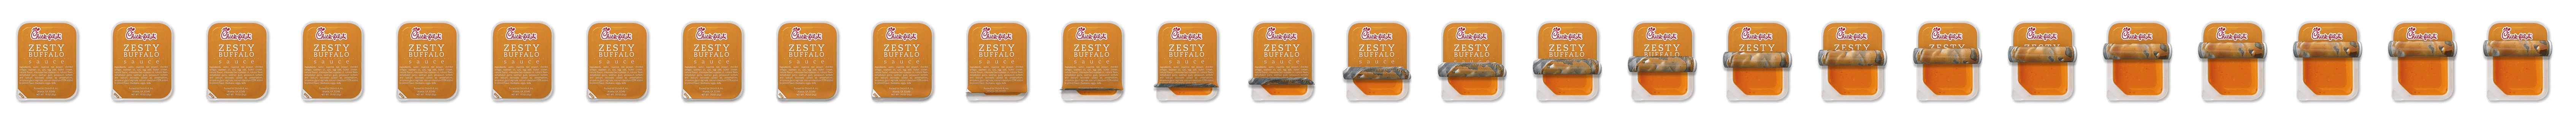 dipping sauces and salad dressings chick fil a